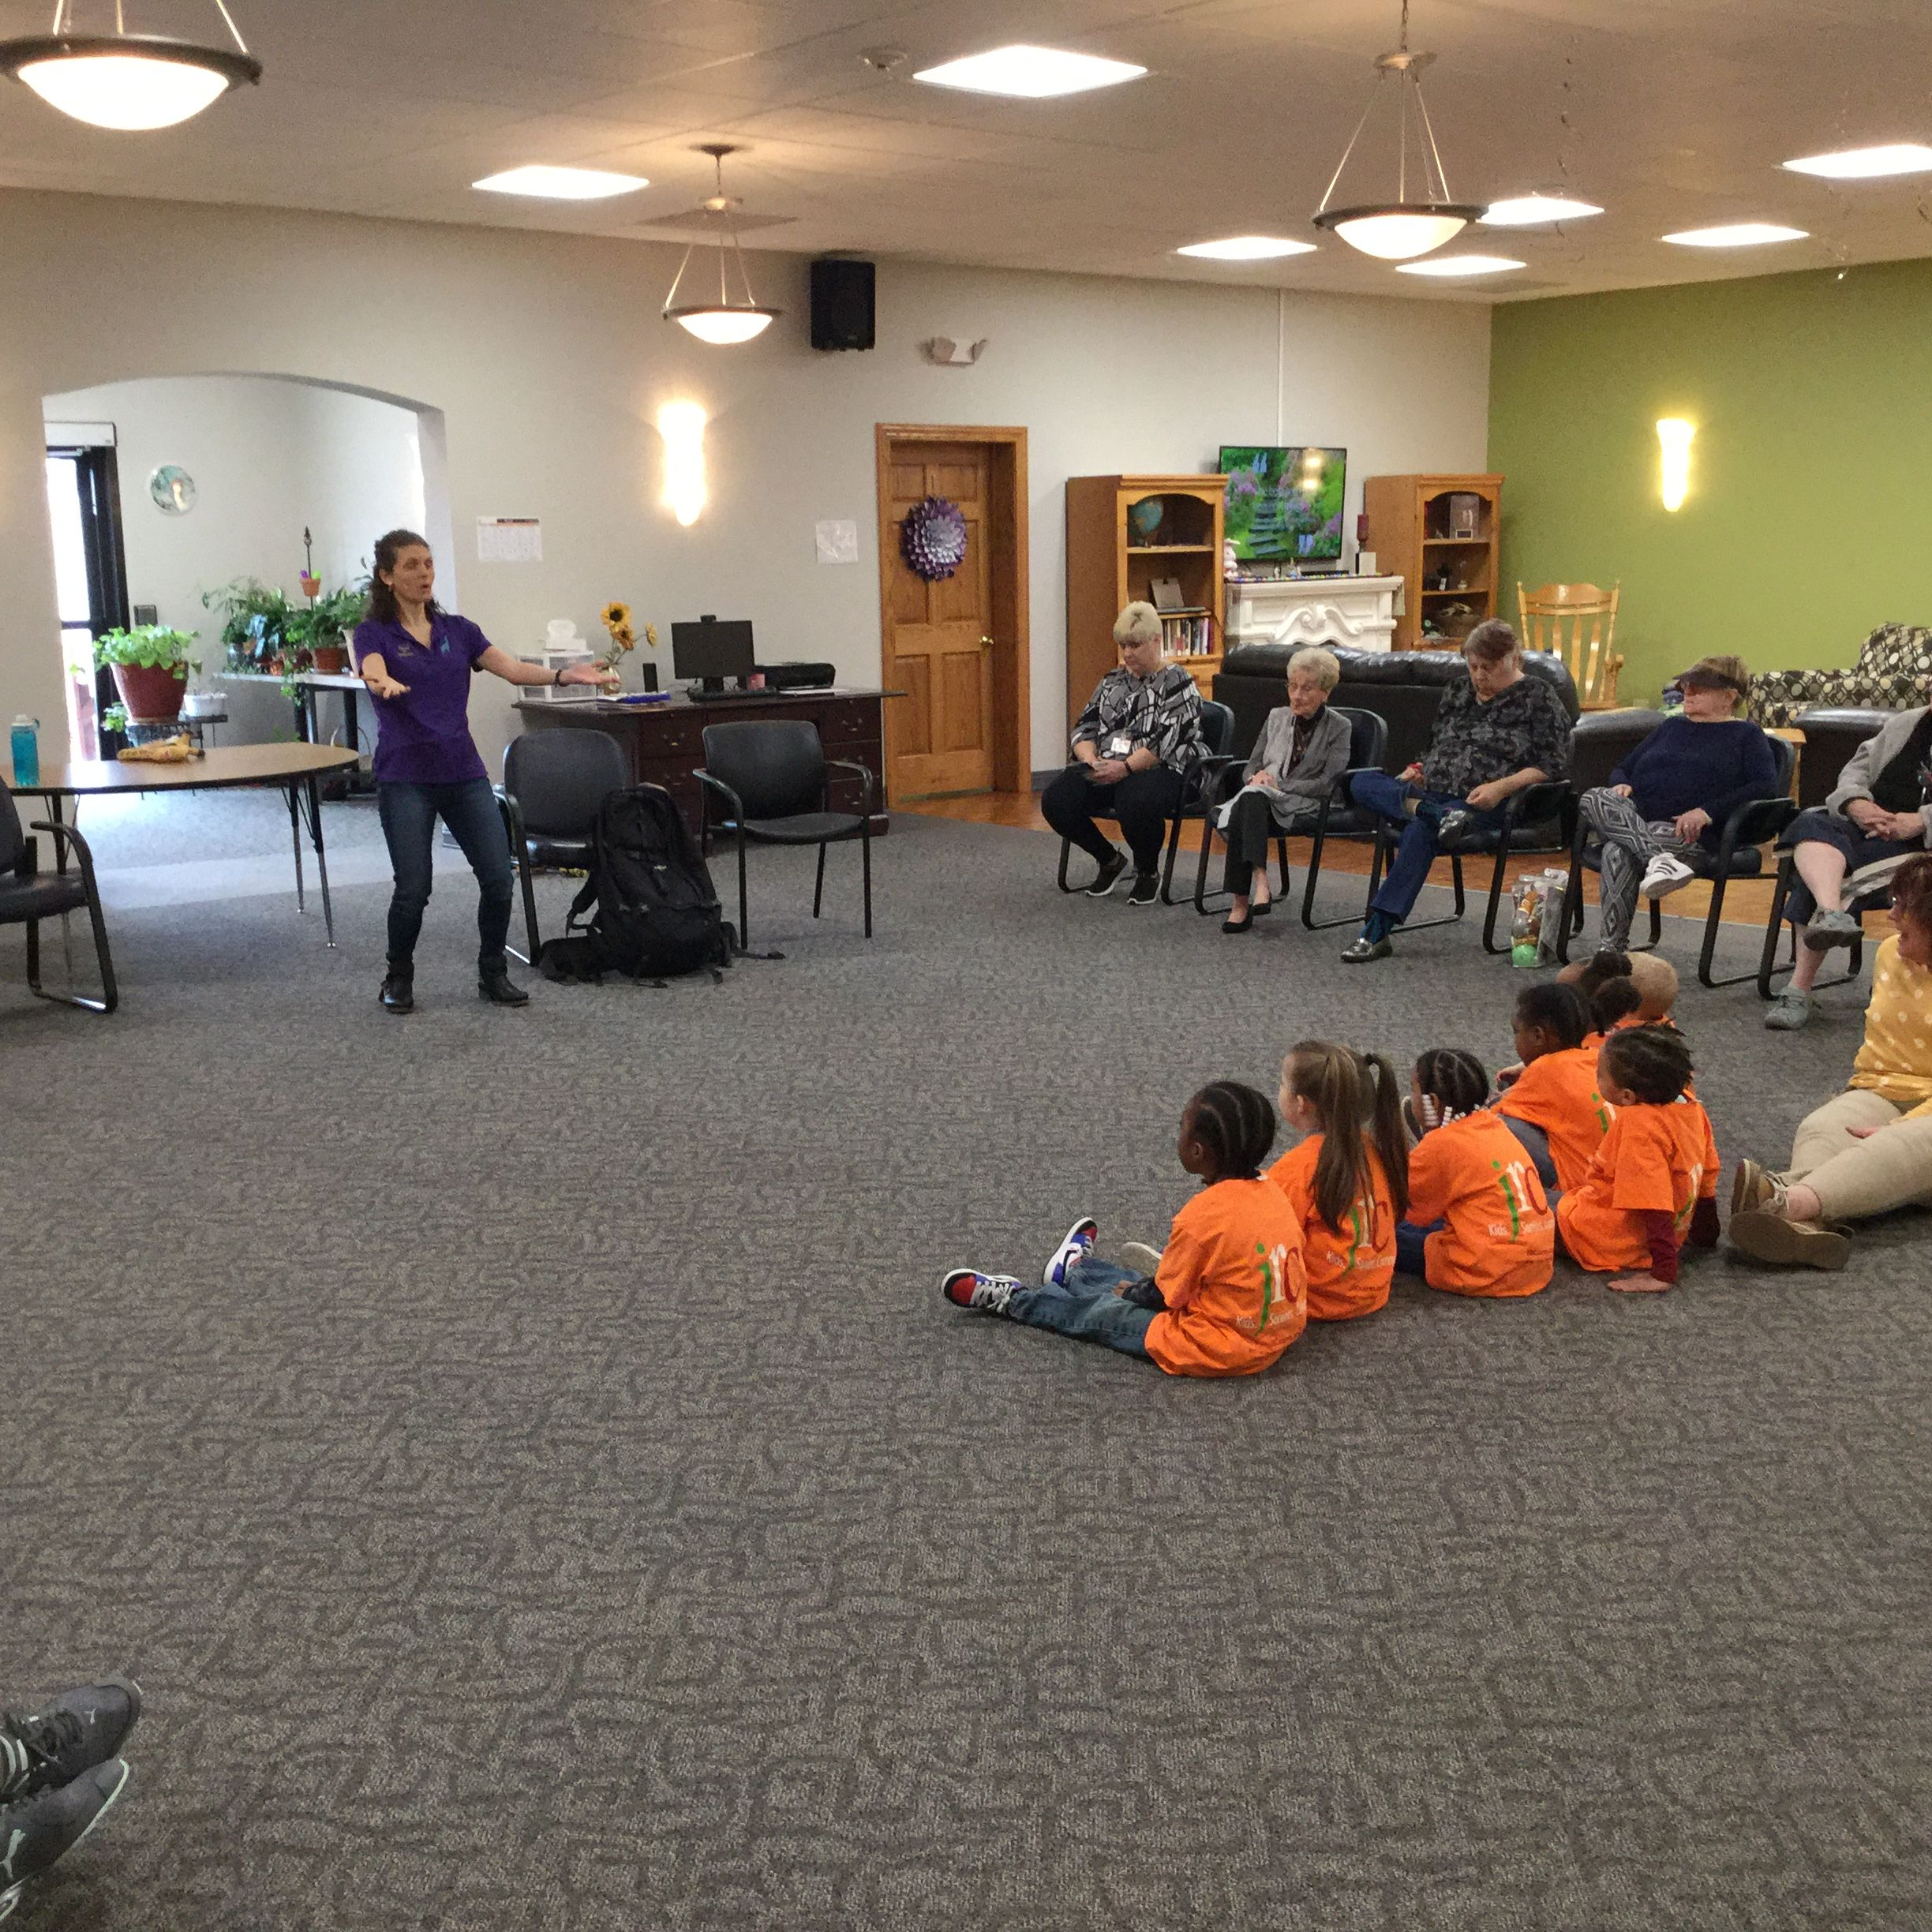 Lindsay Bonilla, Storyteller and Author describes the Intergenerational Connections Program of Storytelling for the day as she chooses her actors from both the children and senior/members.  The balance of the group will be asked to actively participate.